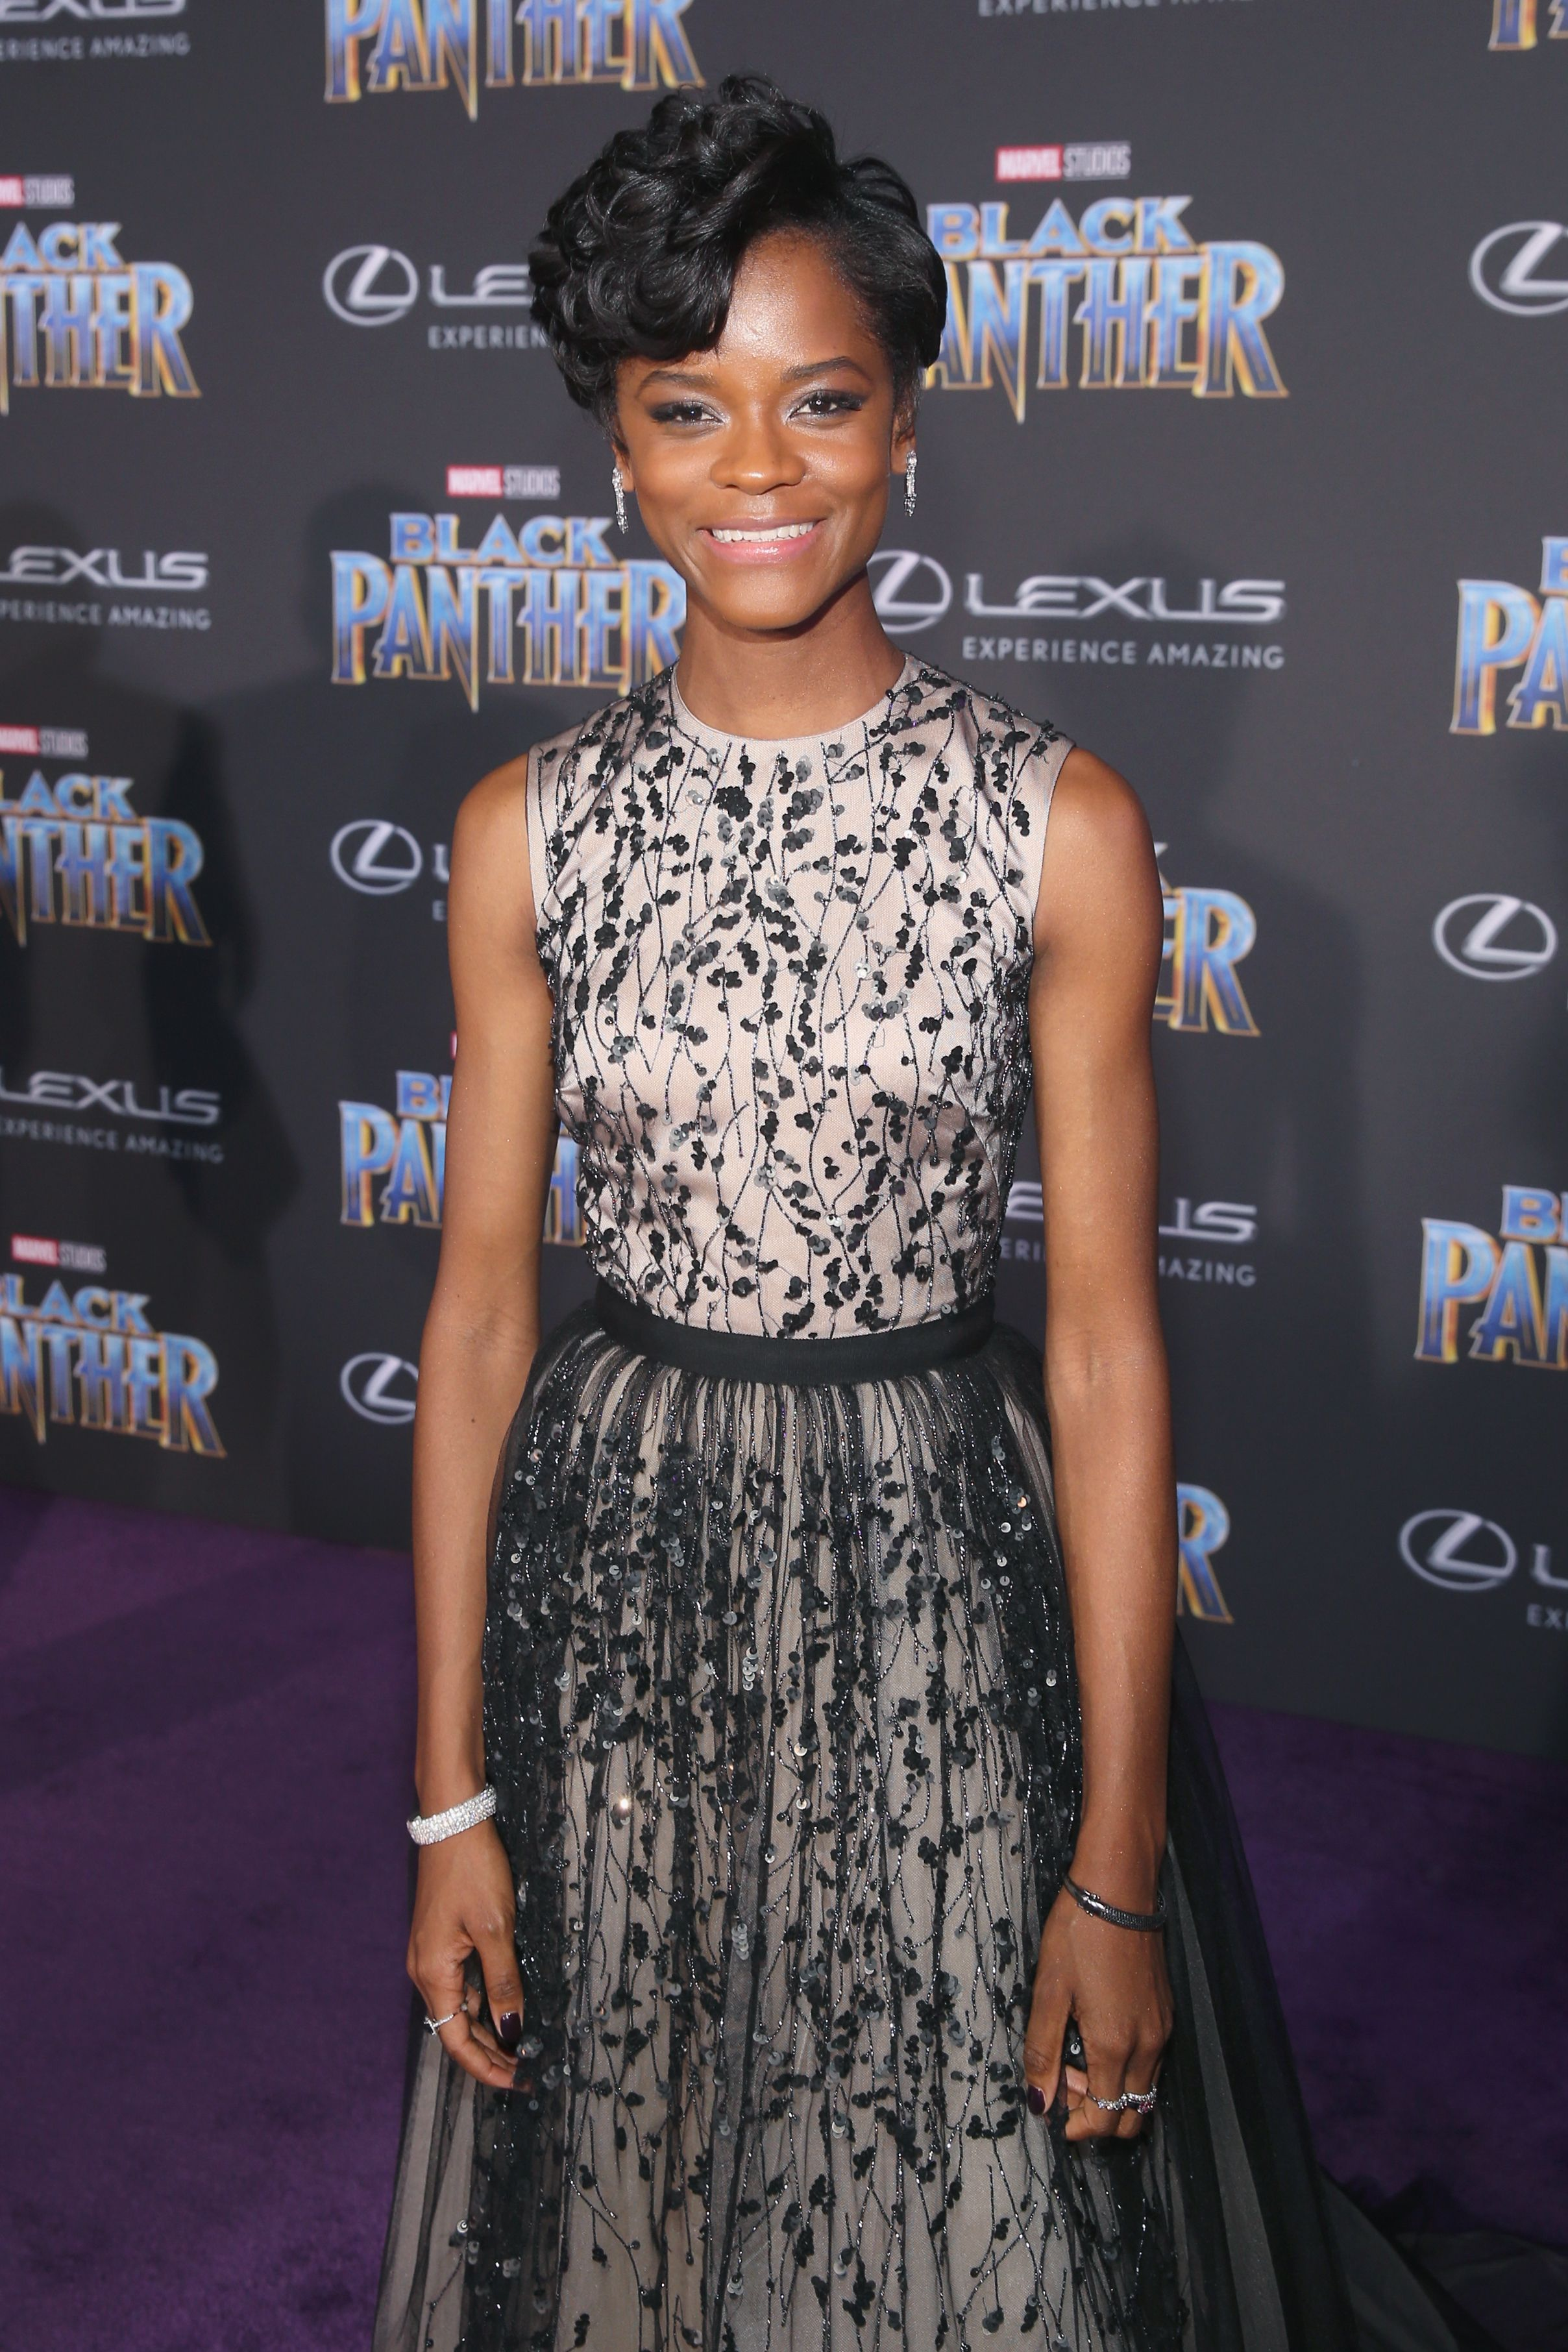 """Letitia Wright during the premiere of Marvel Studios' """"Black Panther"""" at Dolby Theatre on January 29, 2018 in Hollywood, California. 